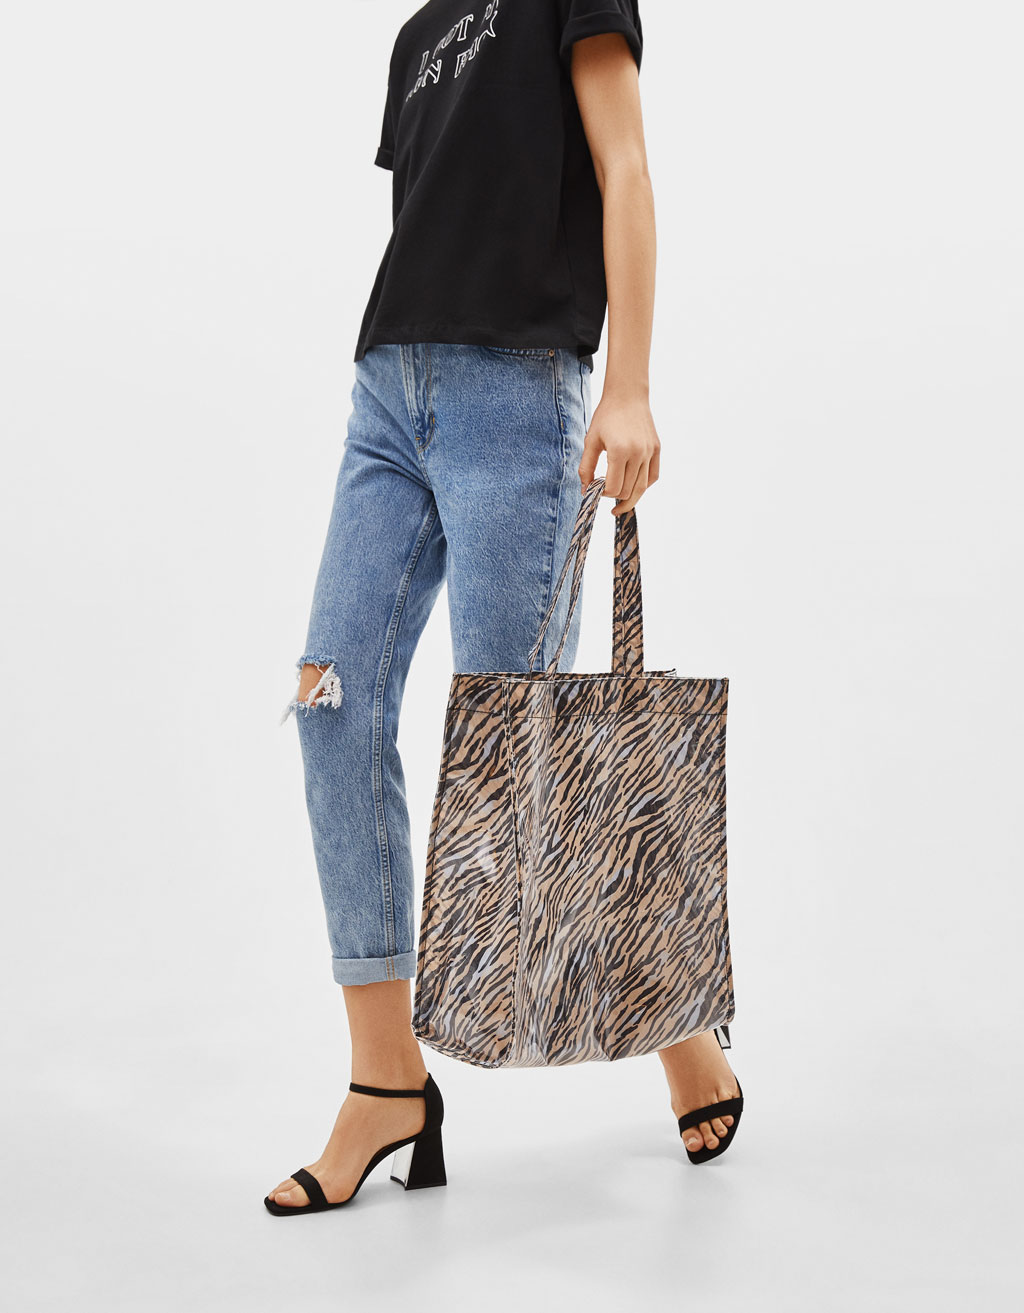 Transparent bag with zebra print